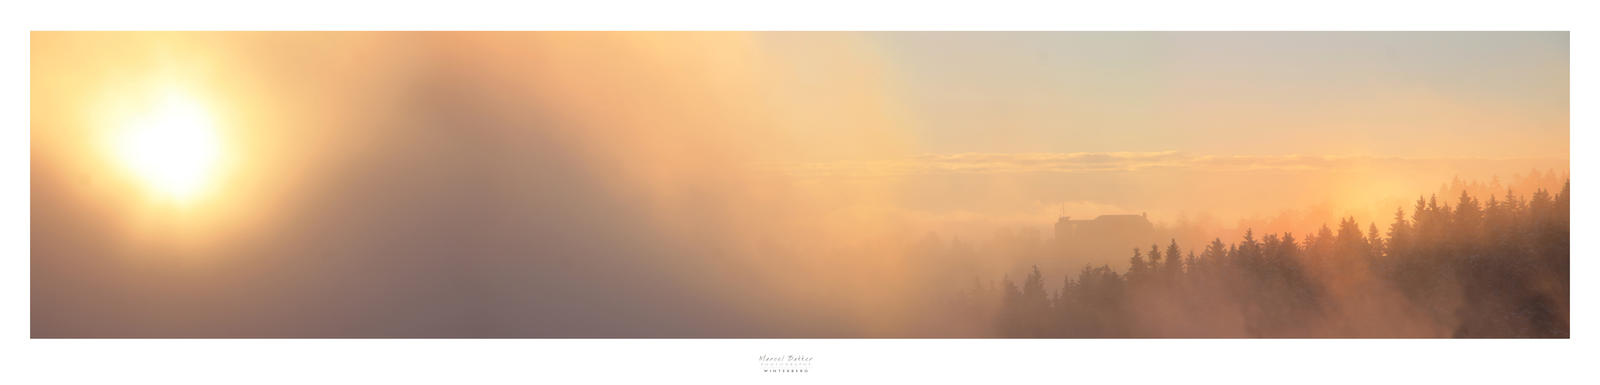 Foggy morning in Winterberg by MBKKR